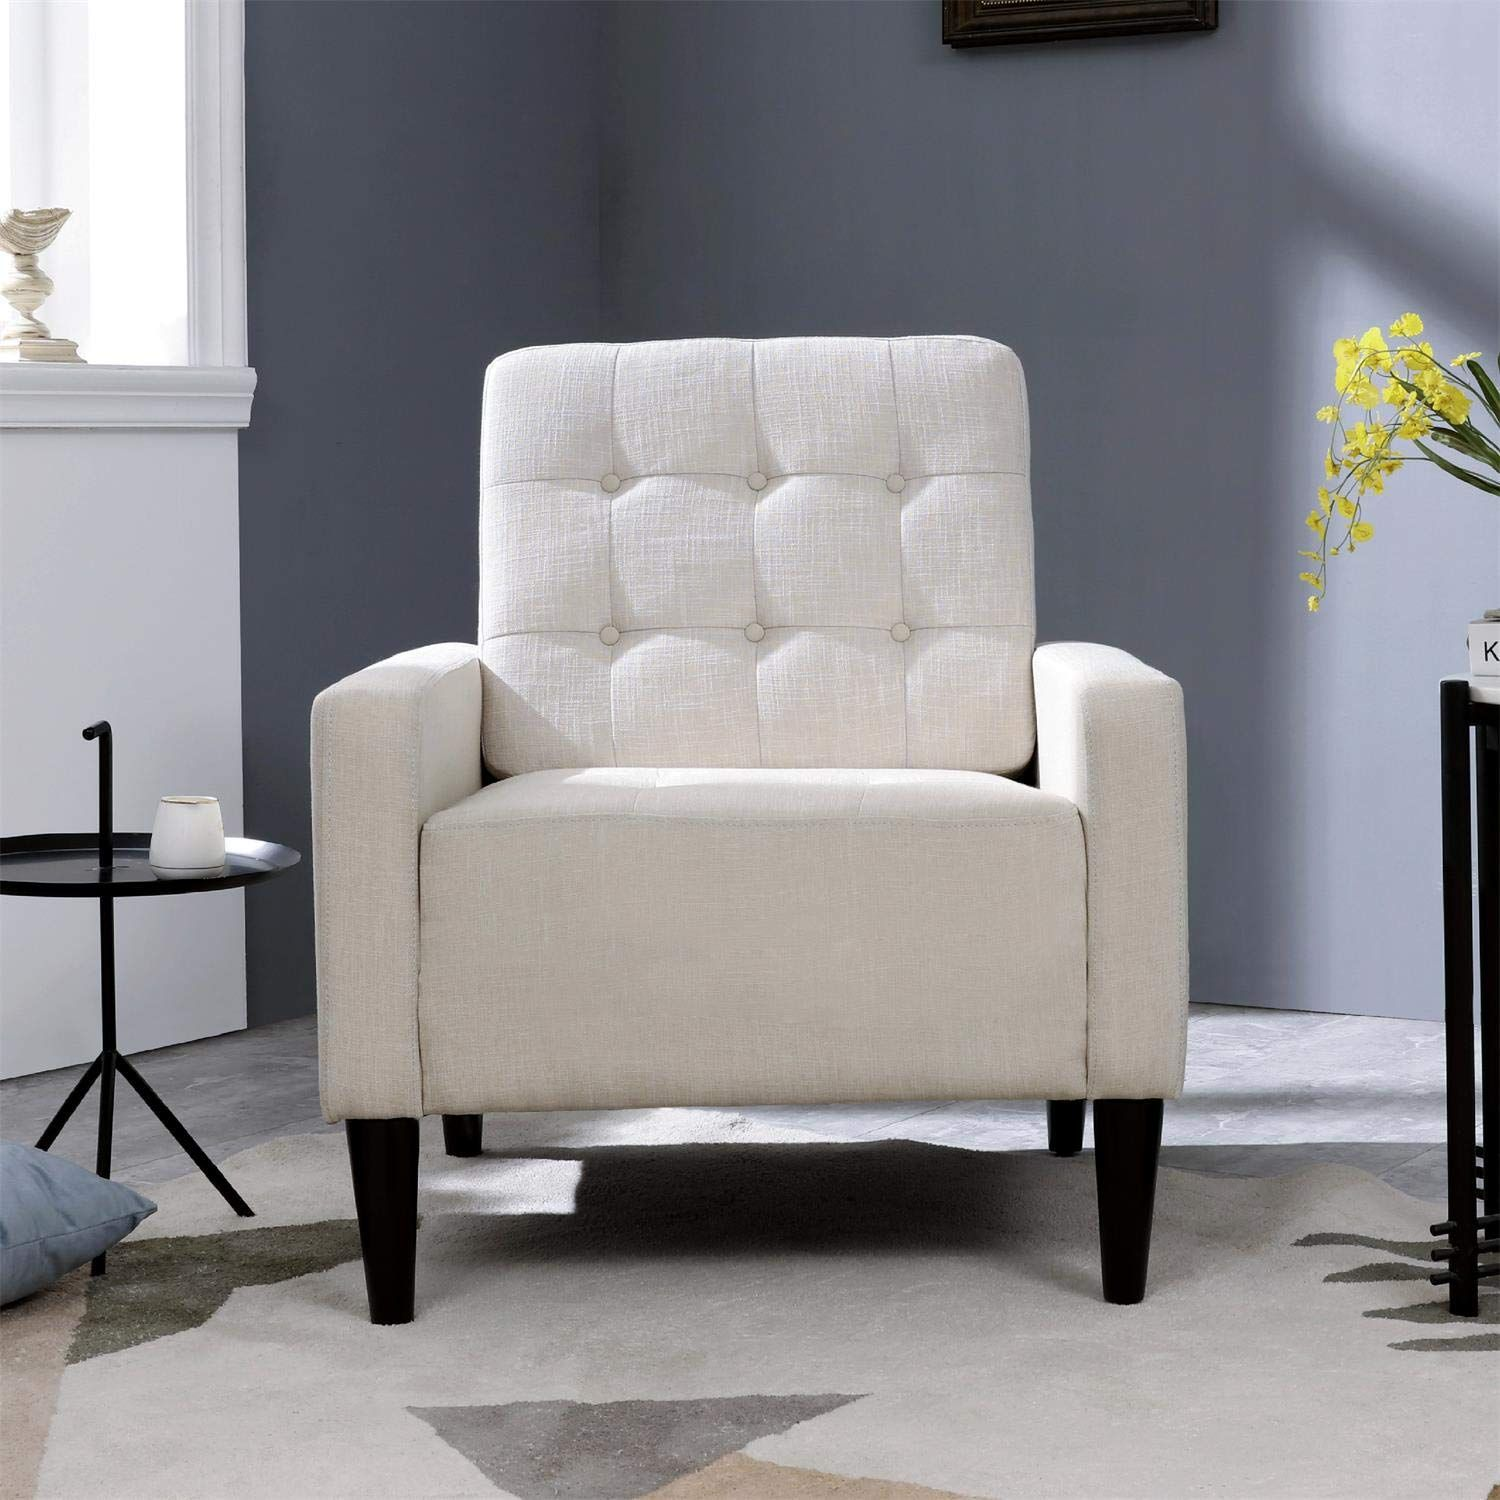 Lorette Wing Chair Home bedroom, Wing chair, Cool chairs